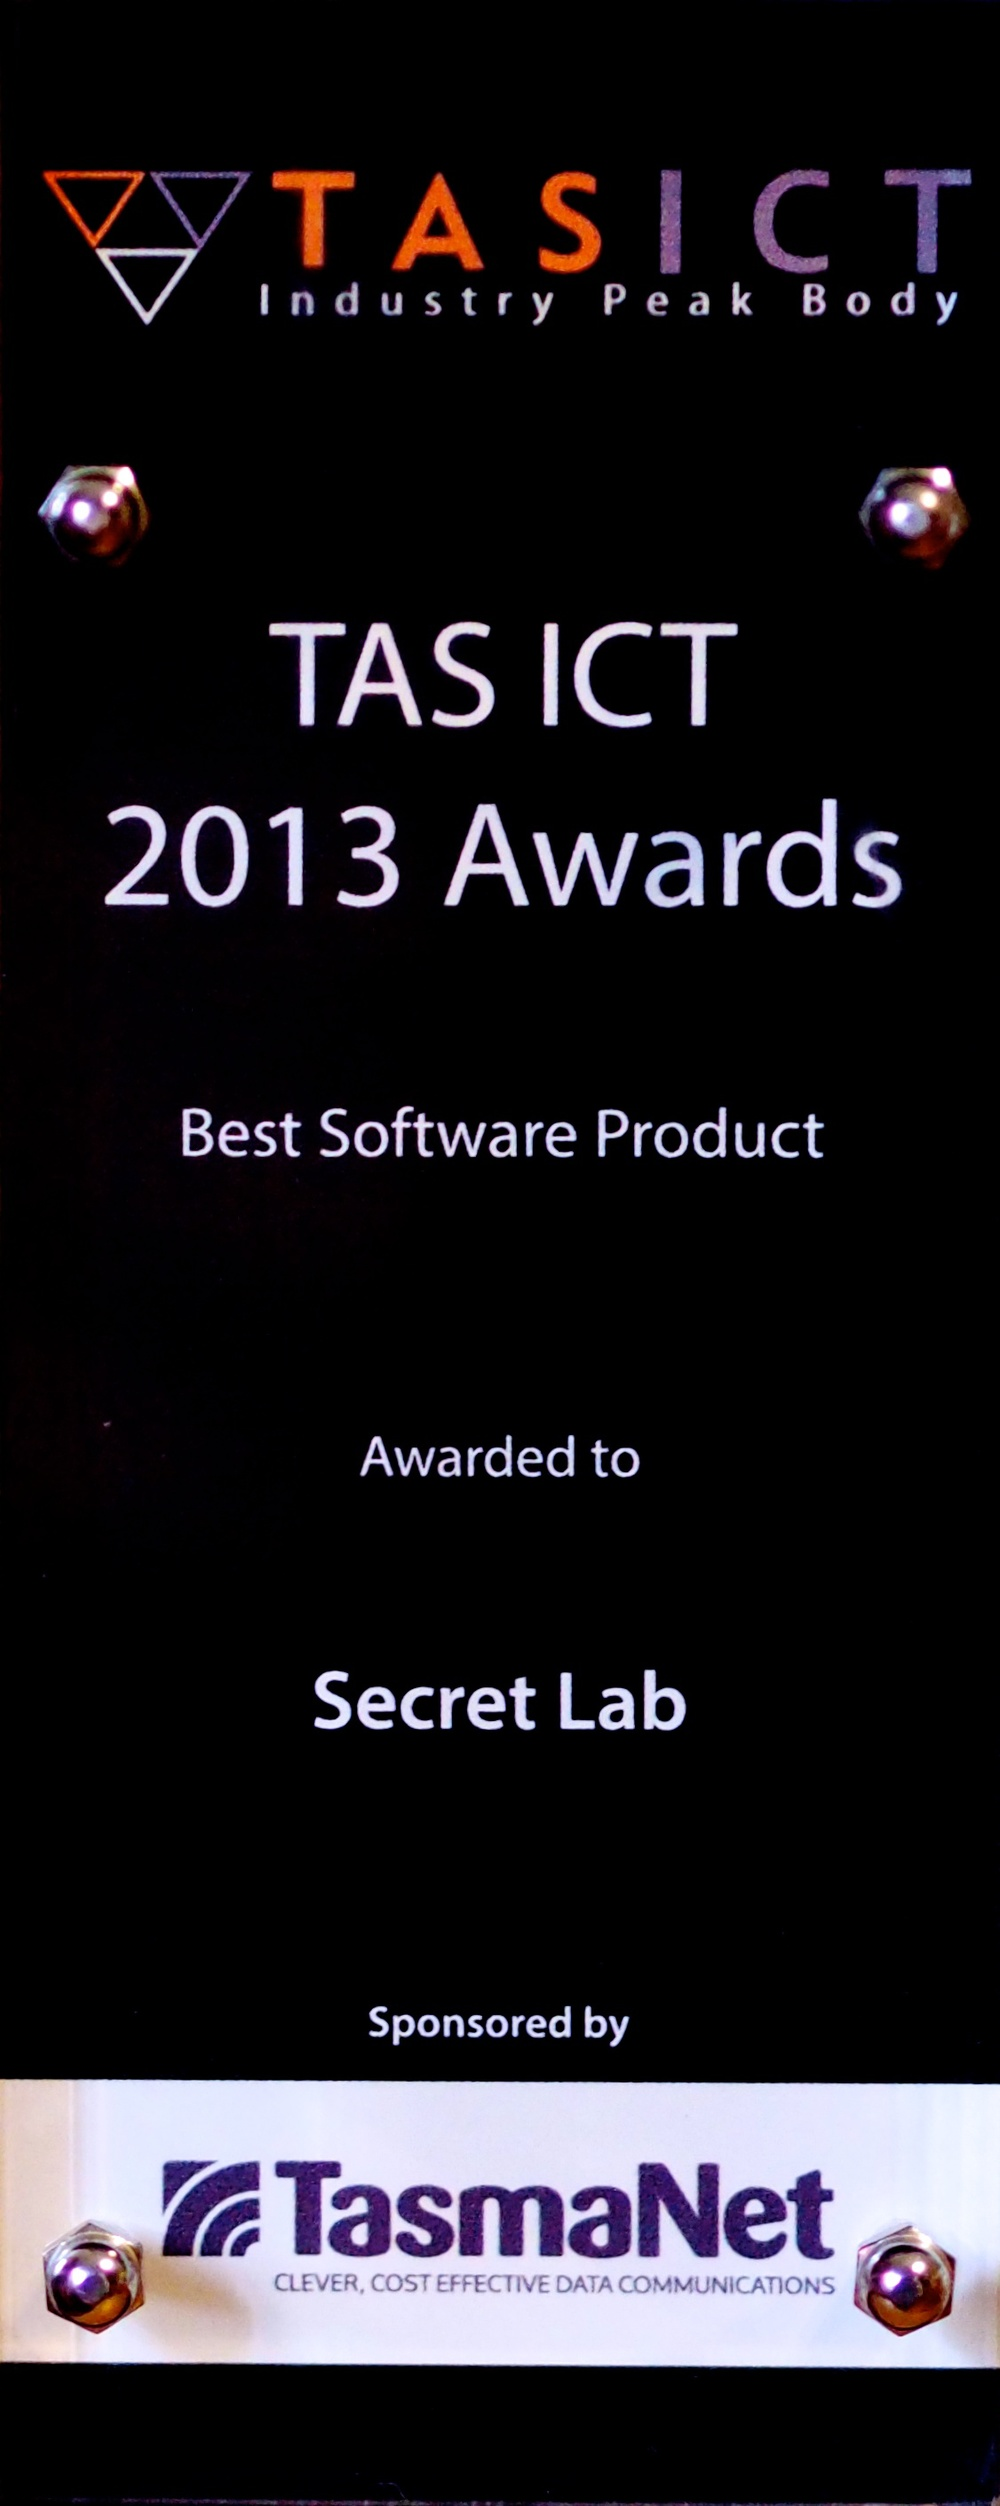 Secret Lab's 2013 TASICT Award